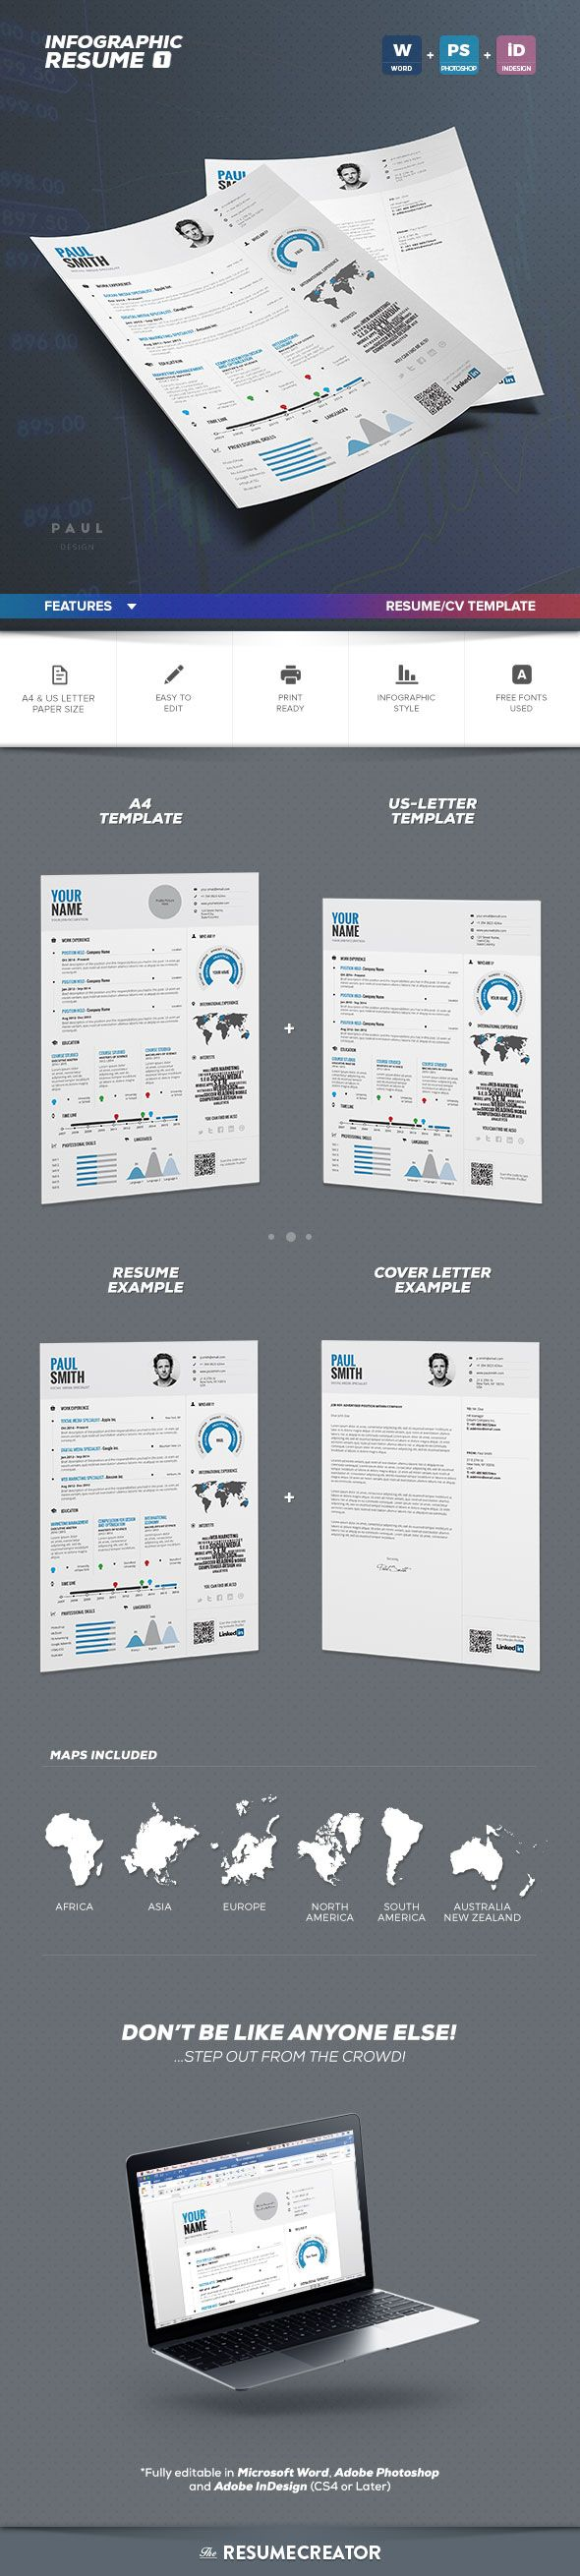 Professionally designed, easy-to-edit template package for the #job #seeker who wants to leave an unforgettable impression. Fast track your job search with a resume as professional, creative, and versatile as you are! Fully customizable in Adobe #Photoshop, #Adobe #InDesign and in #Microsoft Word. Unlimited edits for use again and again!  #Resume #cv #Lebenslauf #PersonalBranding